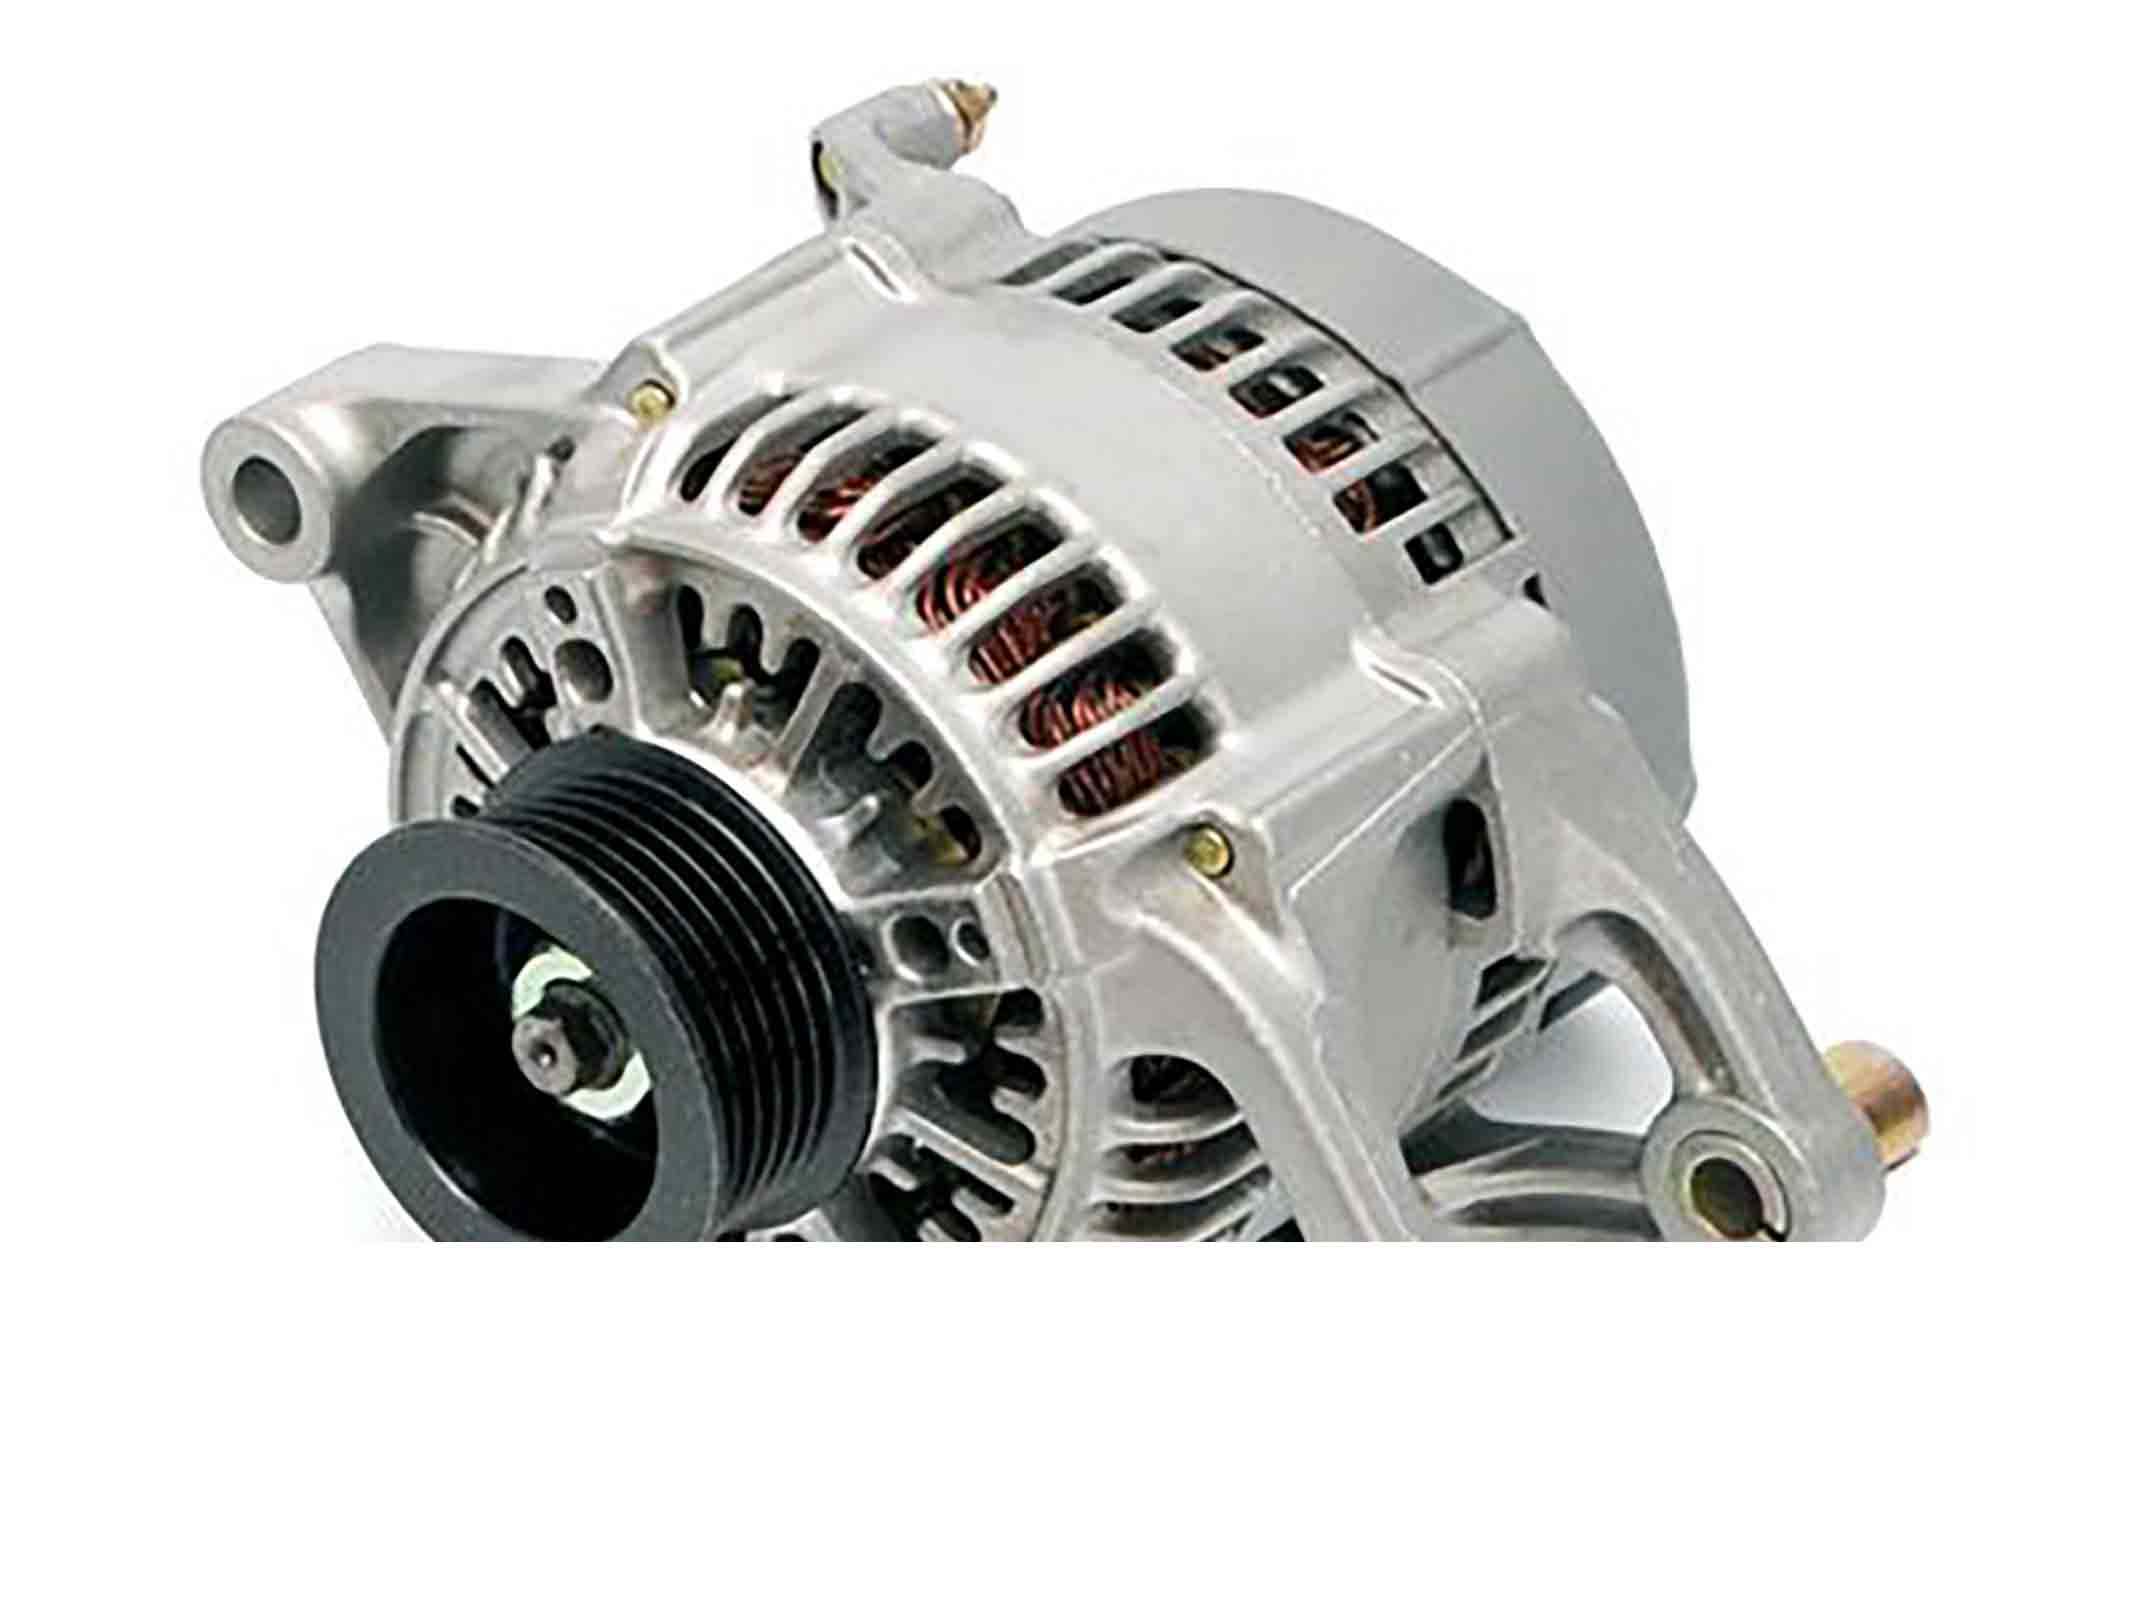 Alternatore wrangler yj 91 95 2.5 l. + 4.0 l. ricambi jeep